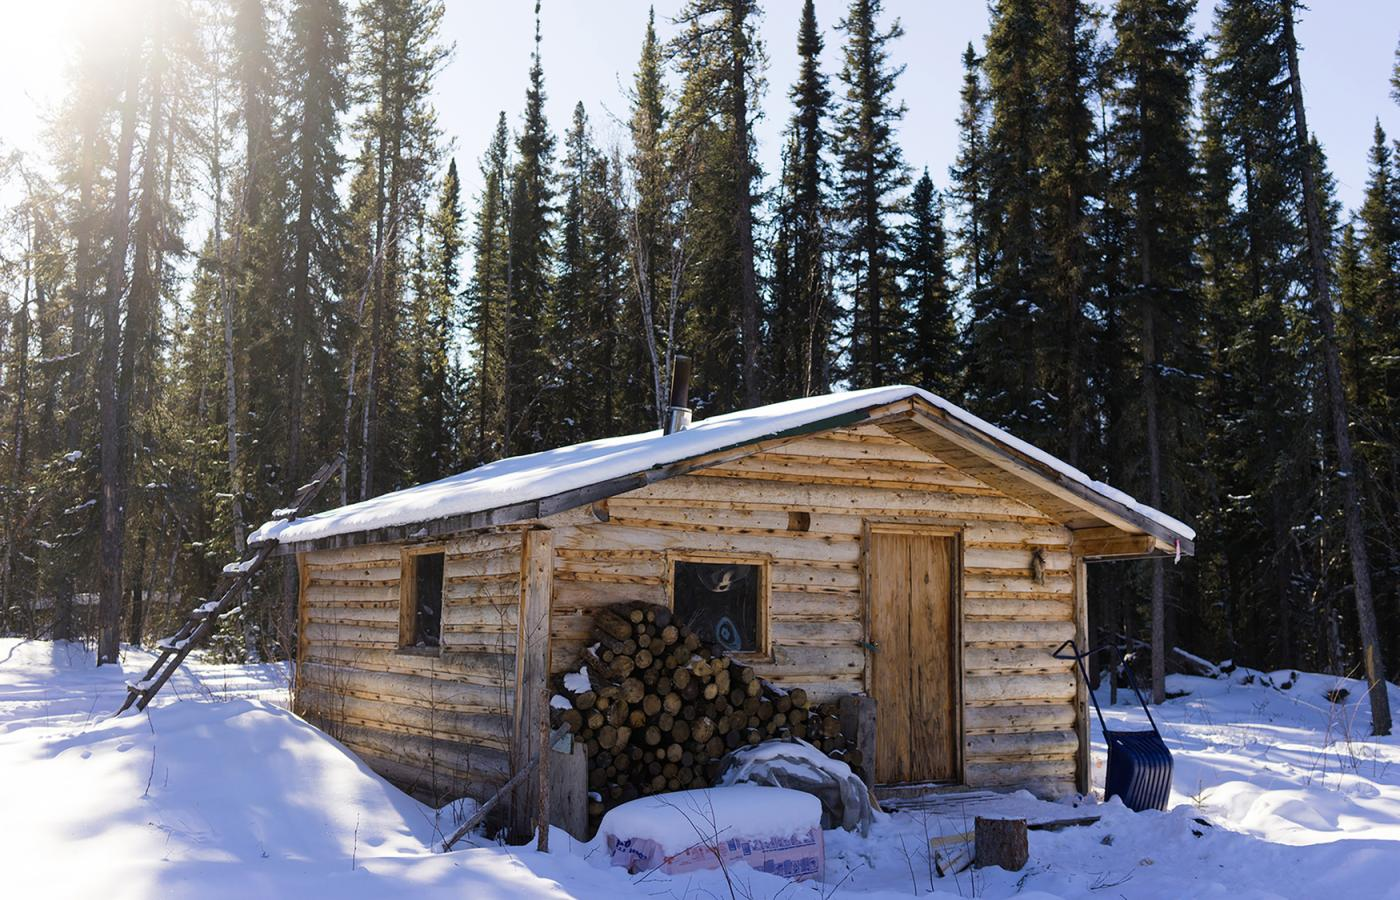 A snowy log cabin on a sunny day in the Northwest Territories